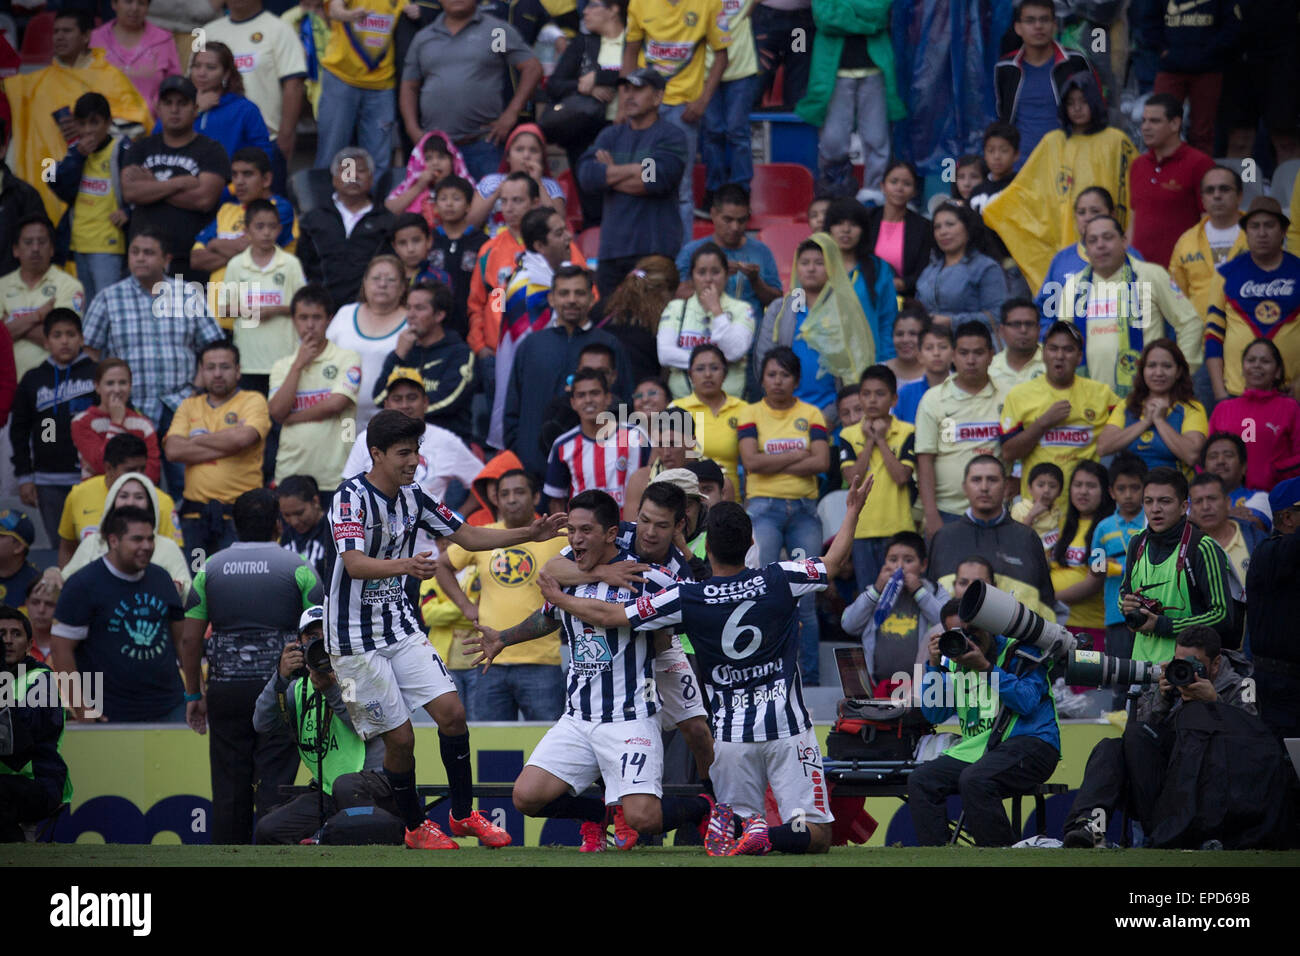 Mexico City, Mexico. 16th May, 2015. Pachuca's German Cano (C) celebrates his scoring with his teammates during - Stock Image